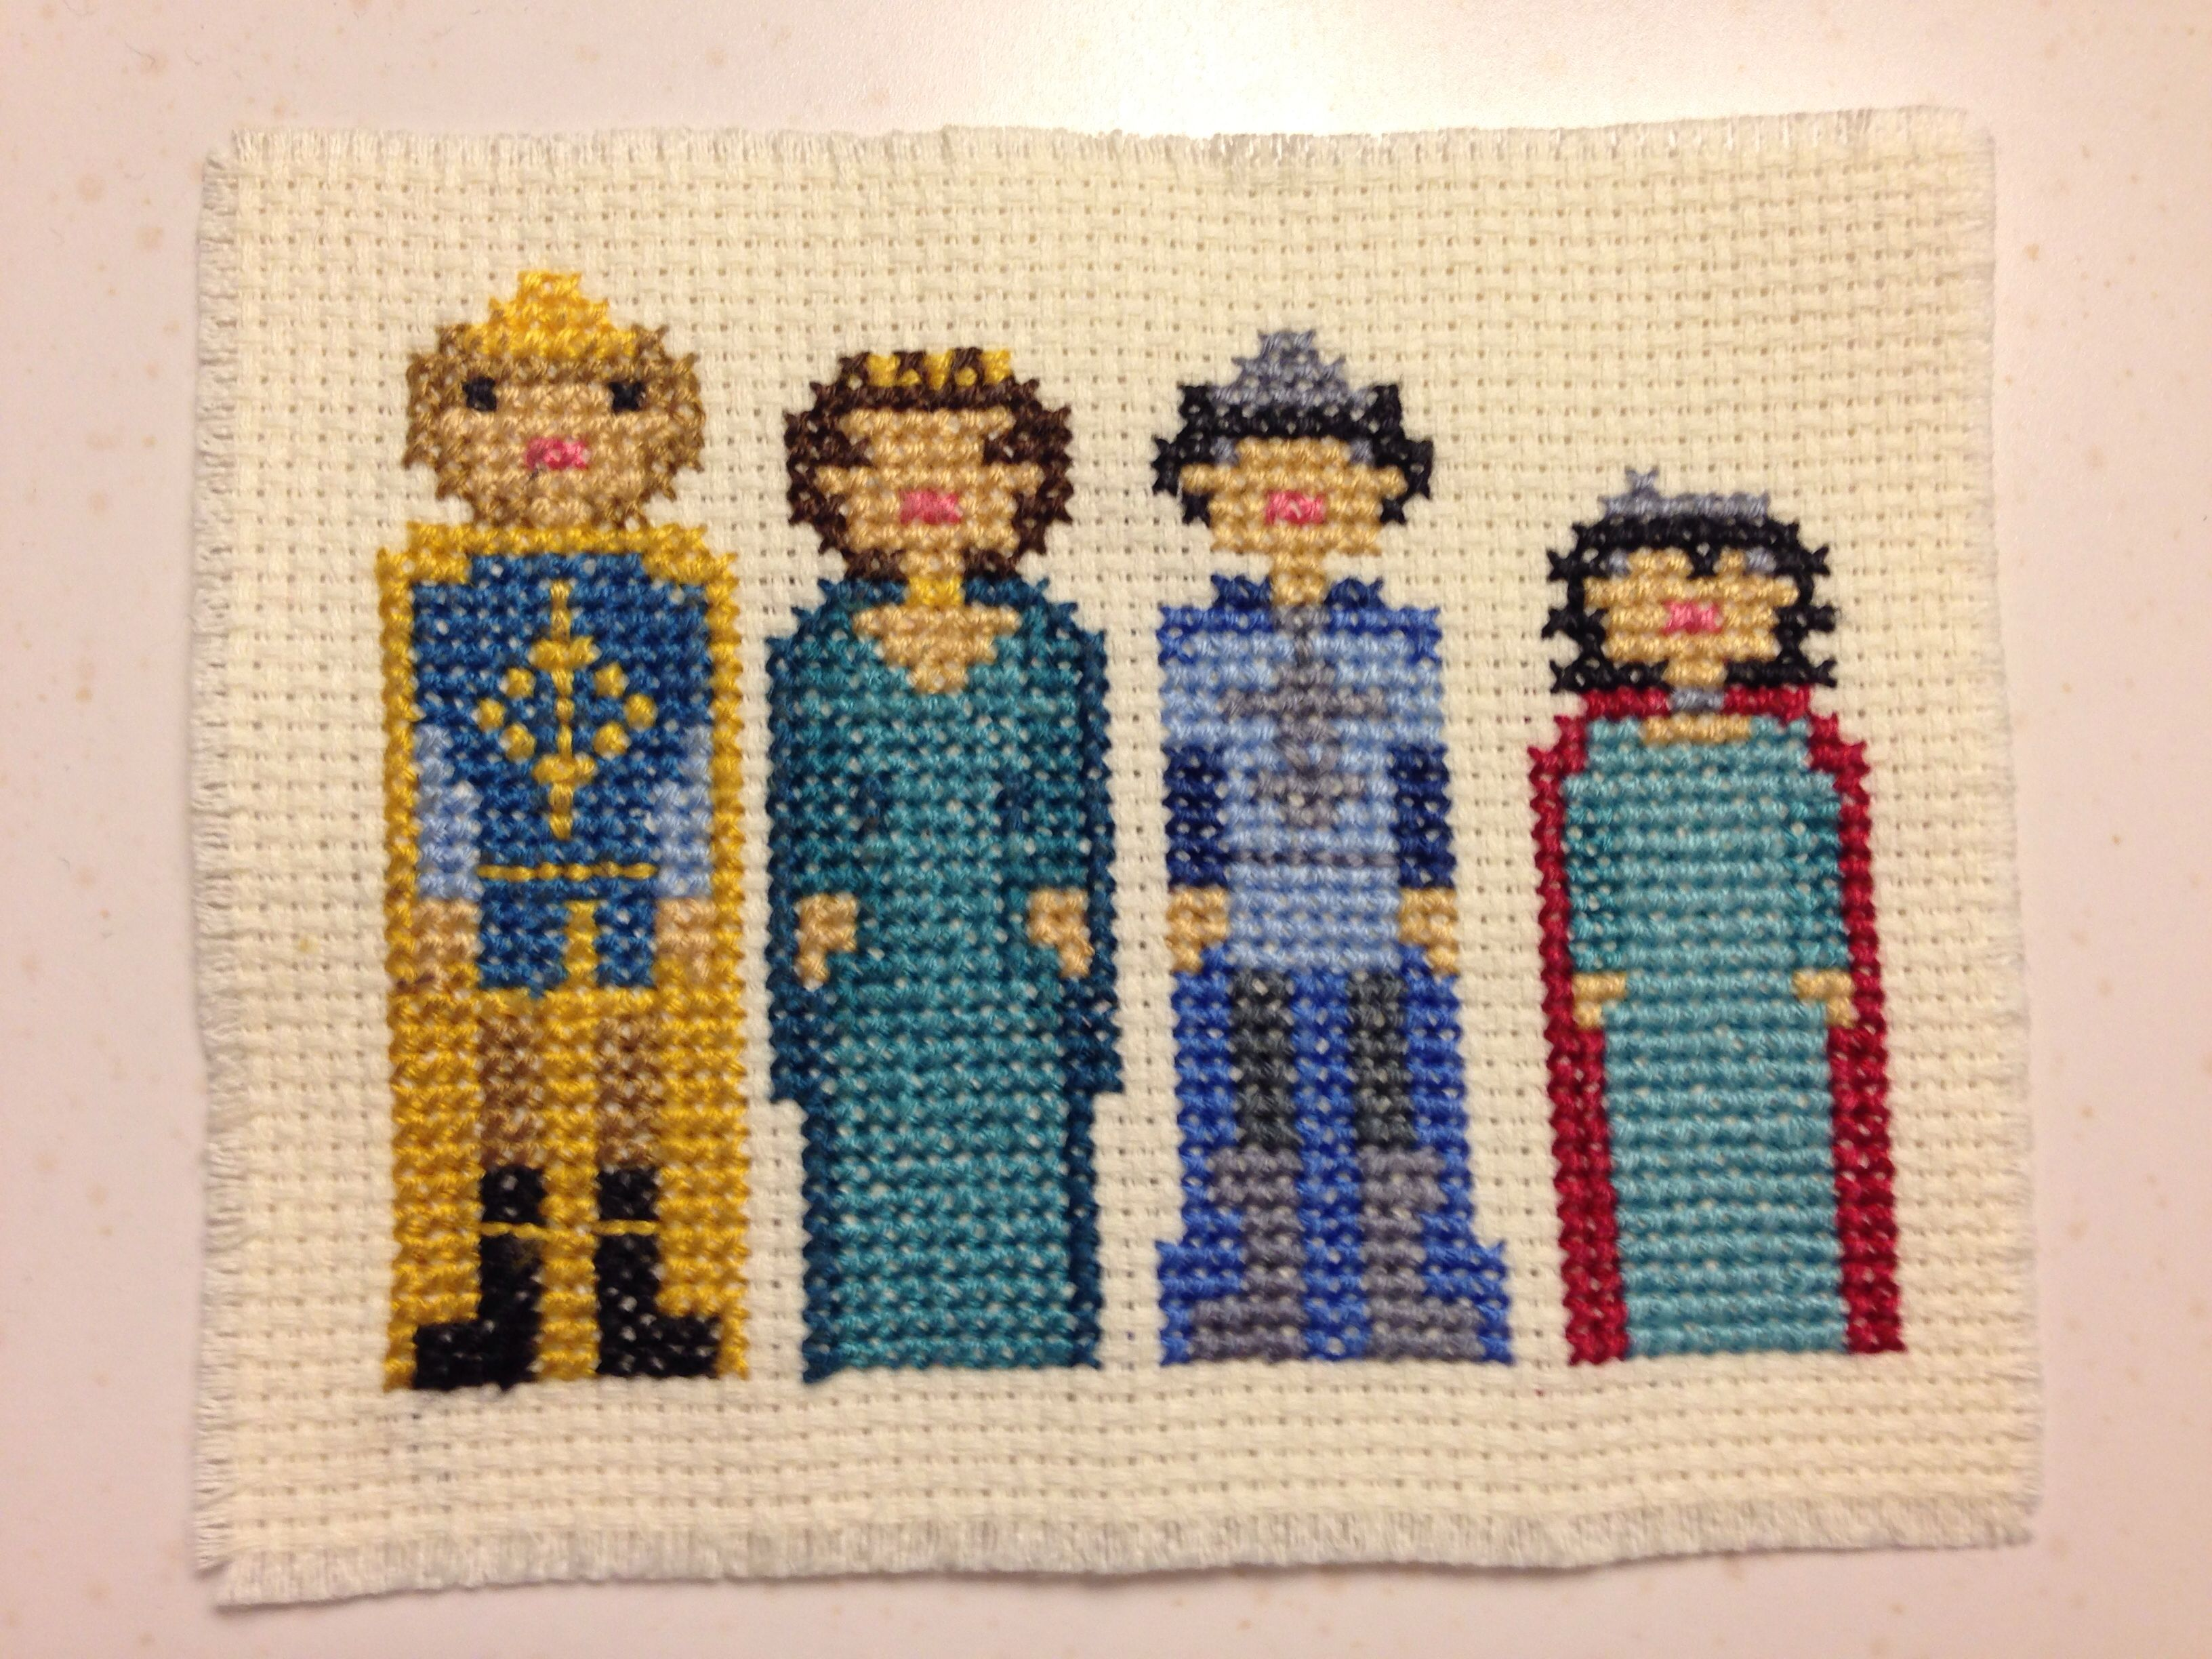 Cross stitch of Peter Susan, Edmund, and Lucy from The